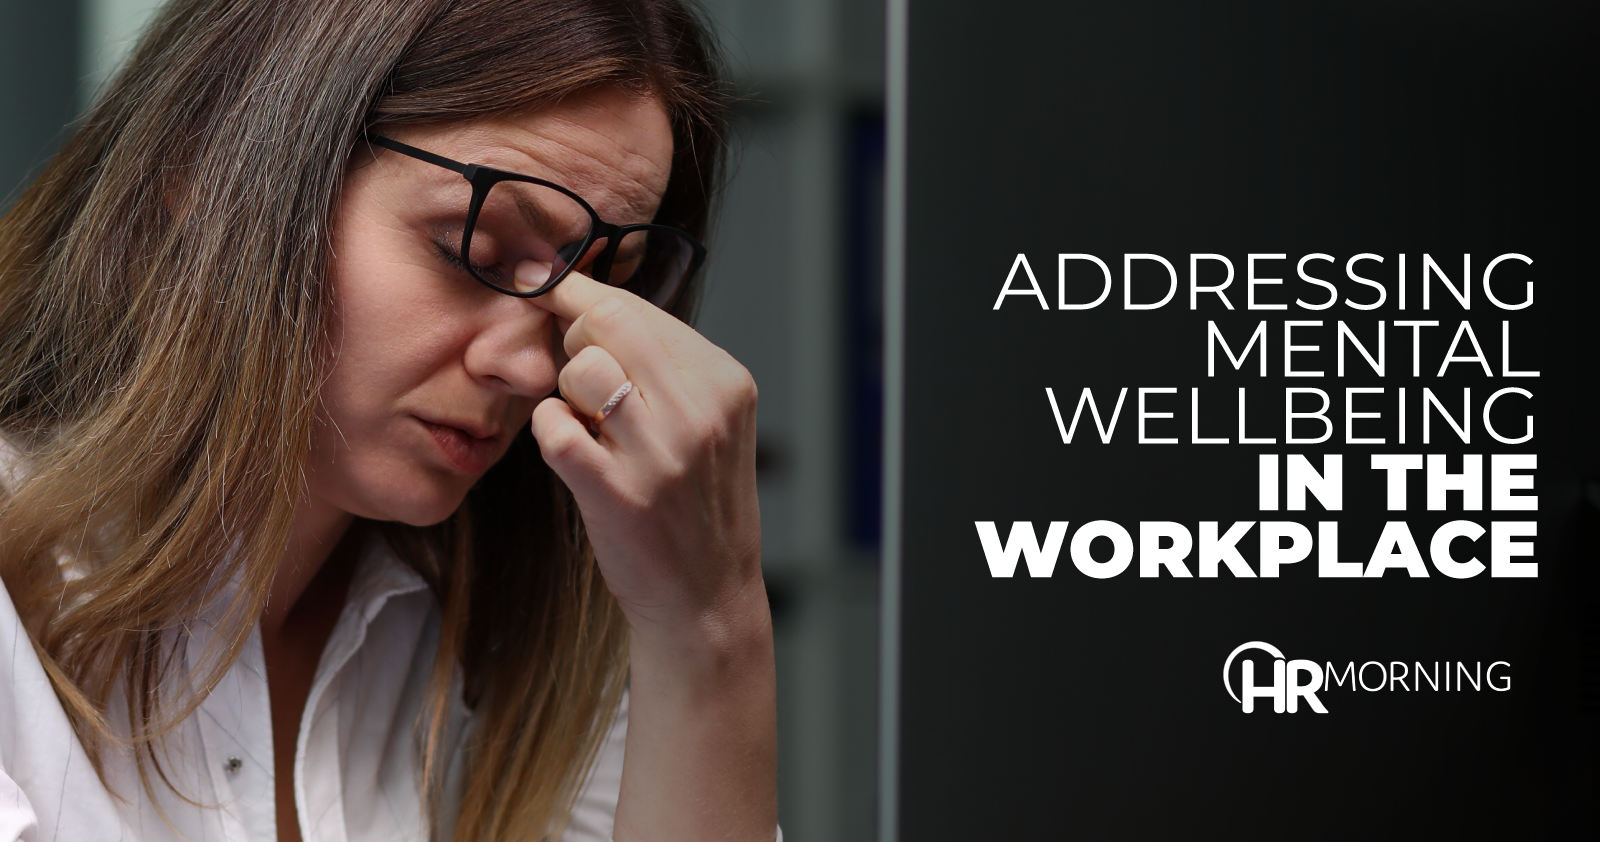 addressing mental wellbeing in the workplace